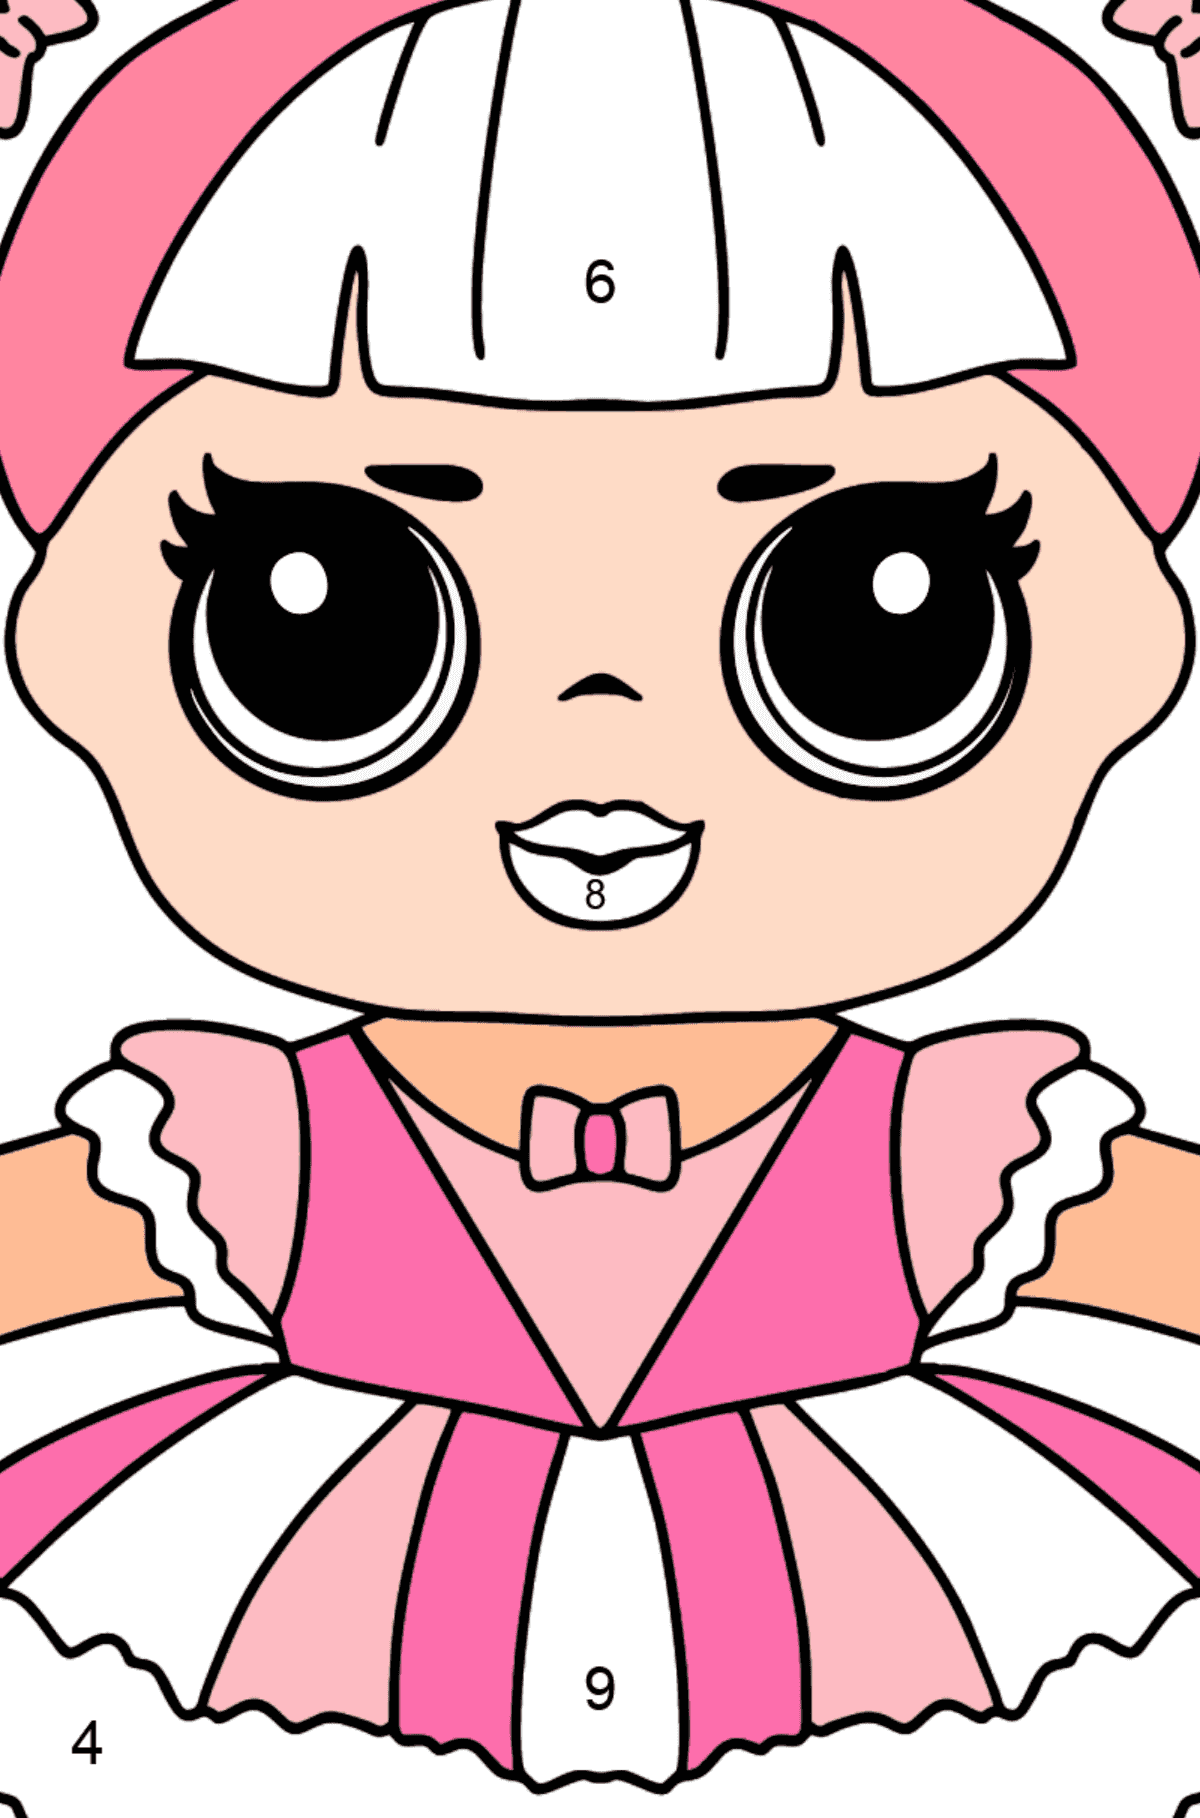 L.O.L. Surprise Doll Center Stage - Coloring by Numbers for Kids